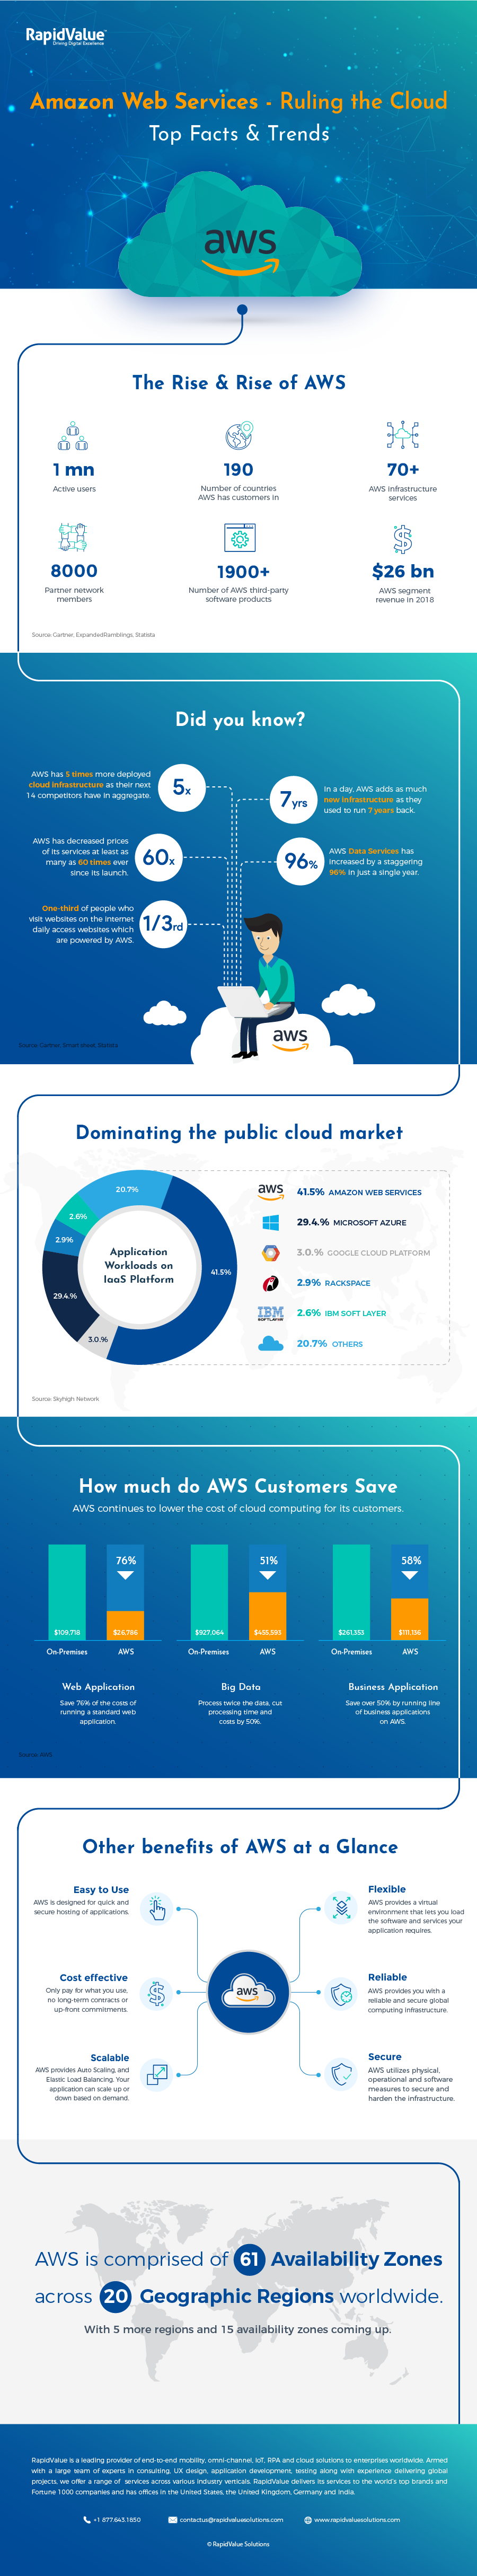 The Impressive Stats Behind Amazon's Dominance of the Cloud